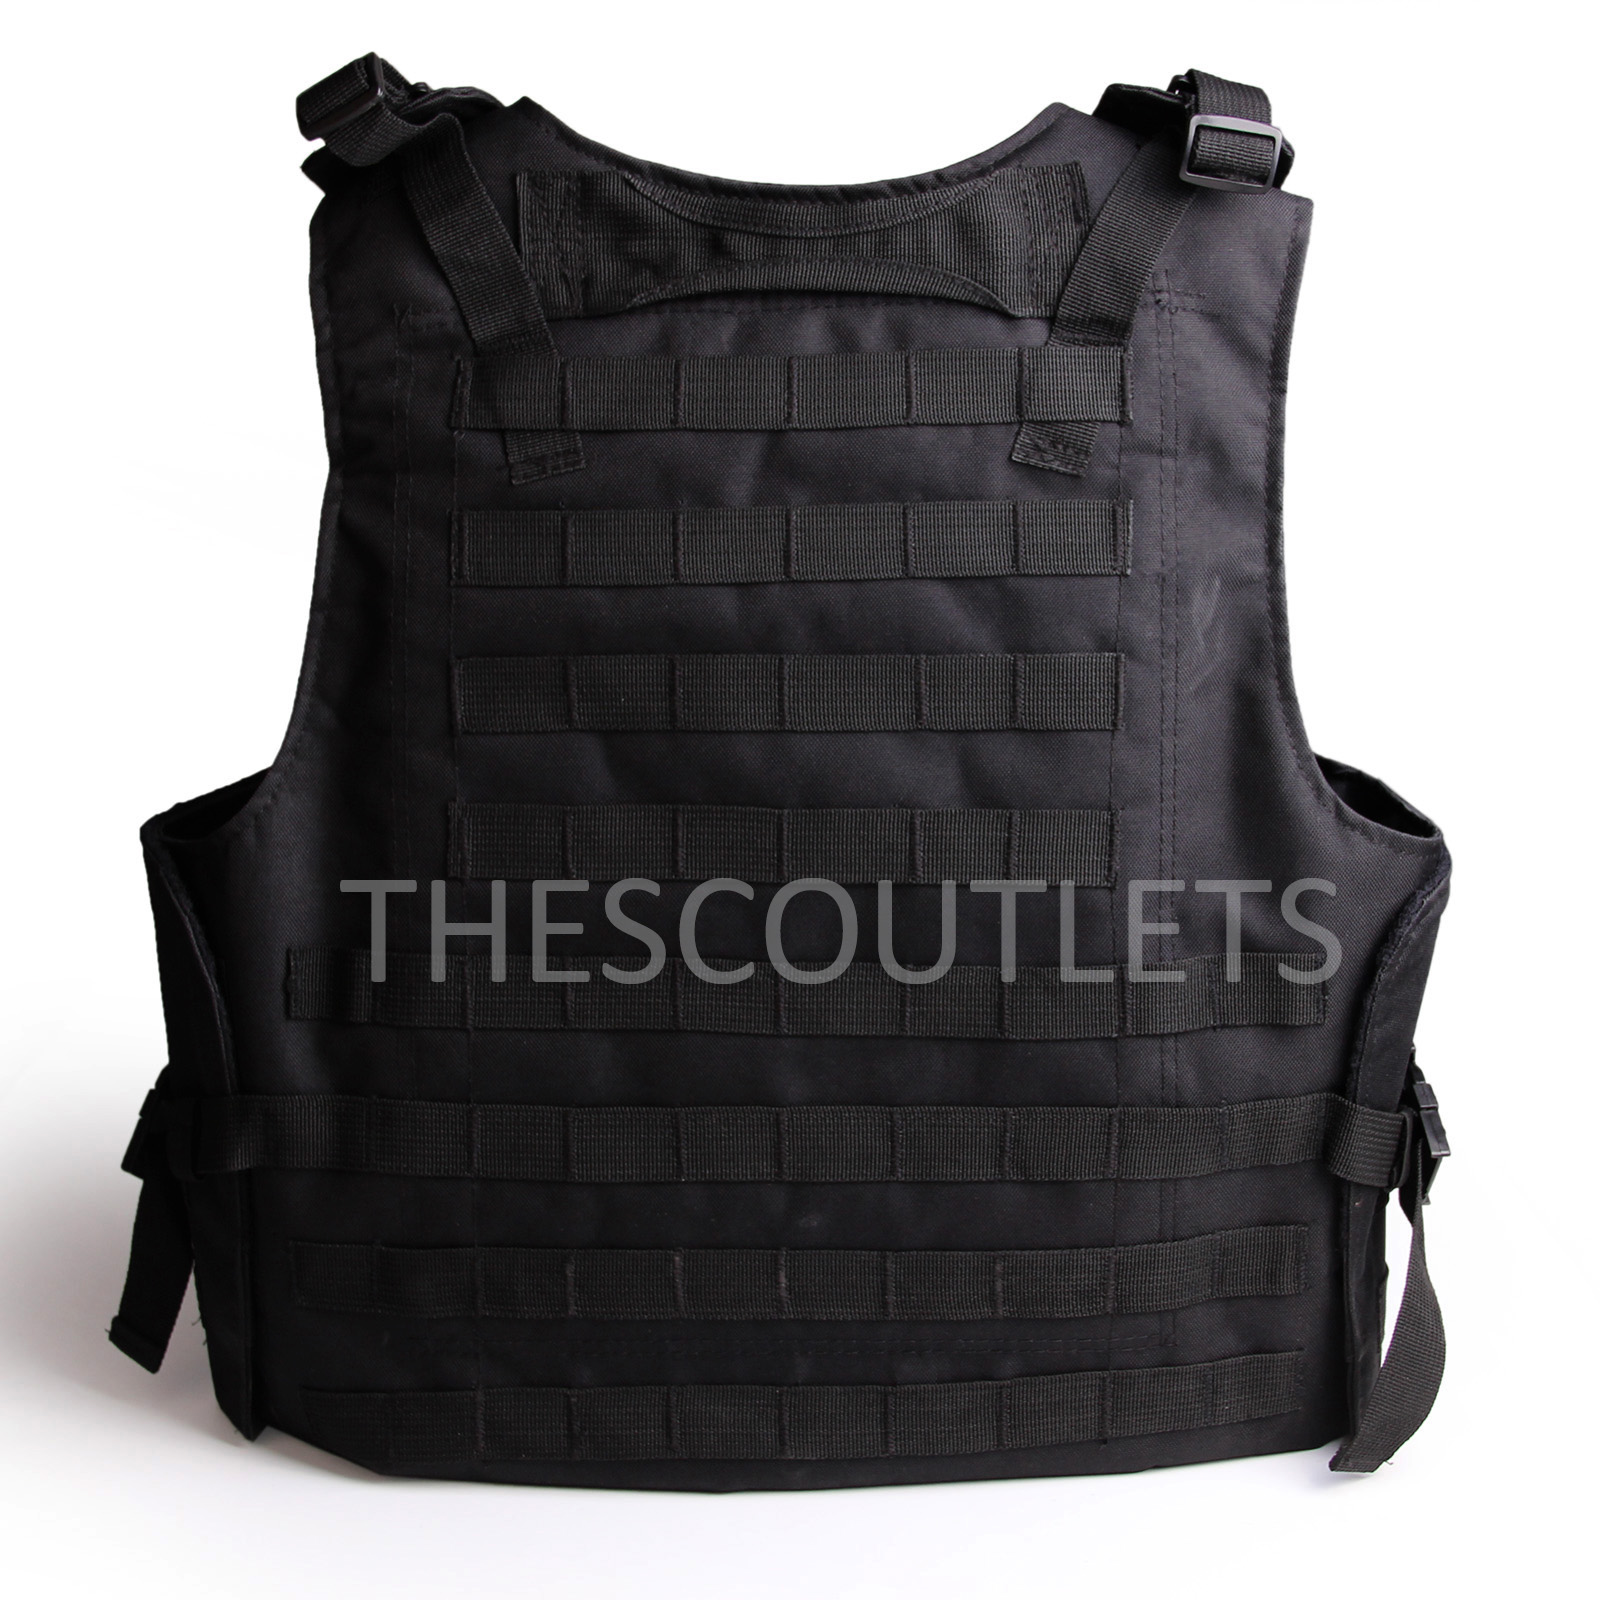 Military-Tactical-Paintball-Army-Molle-Carrier-Adjustable-Airsoft-Combat-Vest thumbnail 3